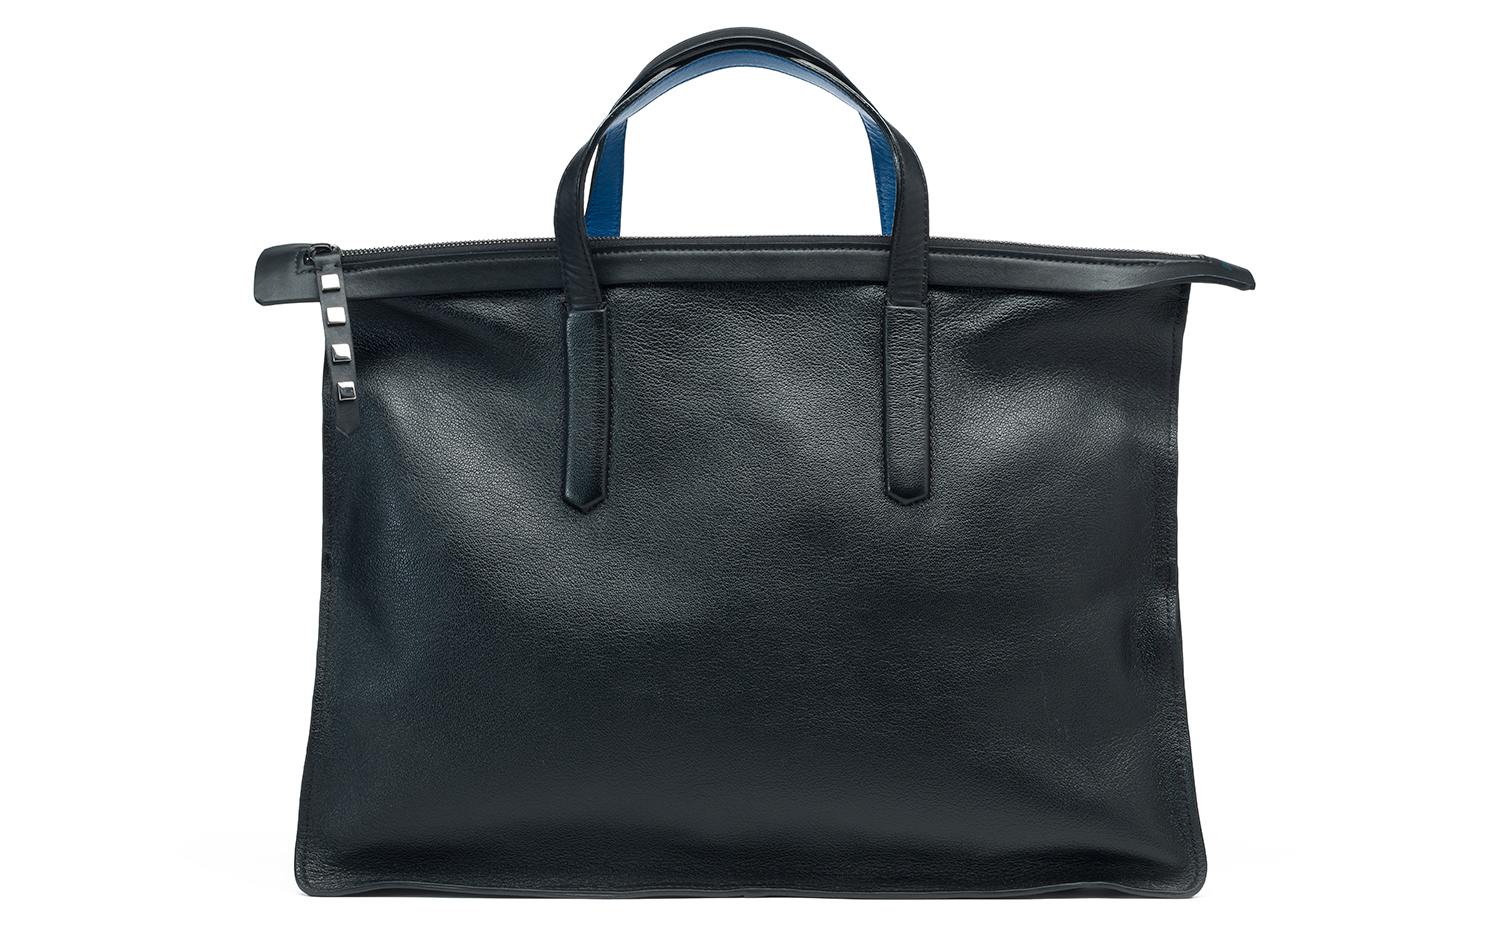 Jimmy Choo GABEL tote - Black